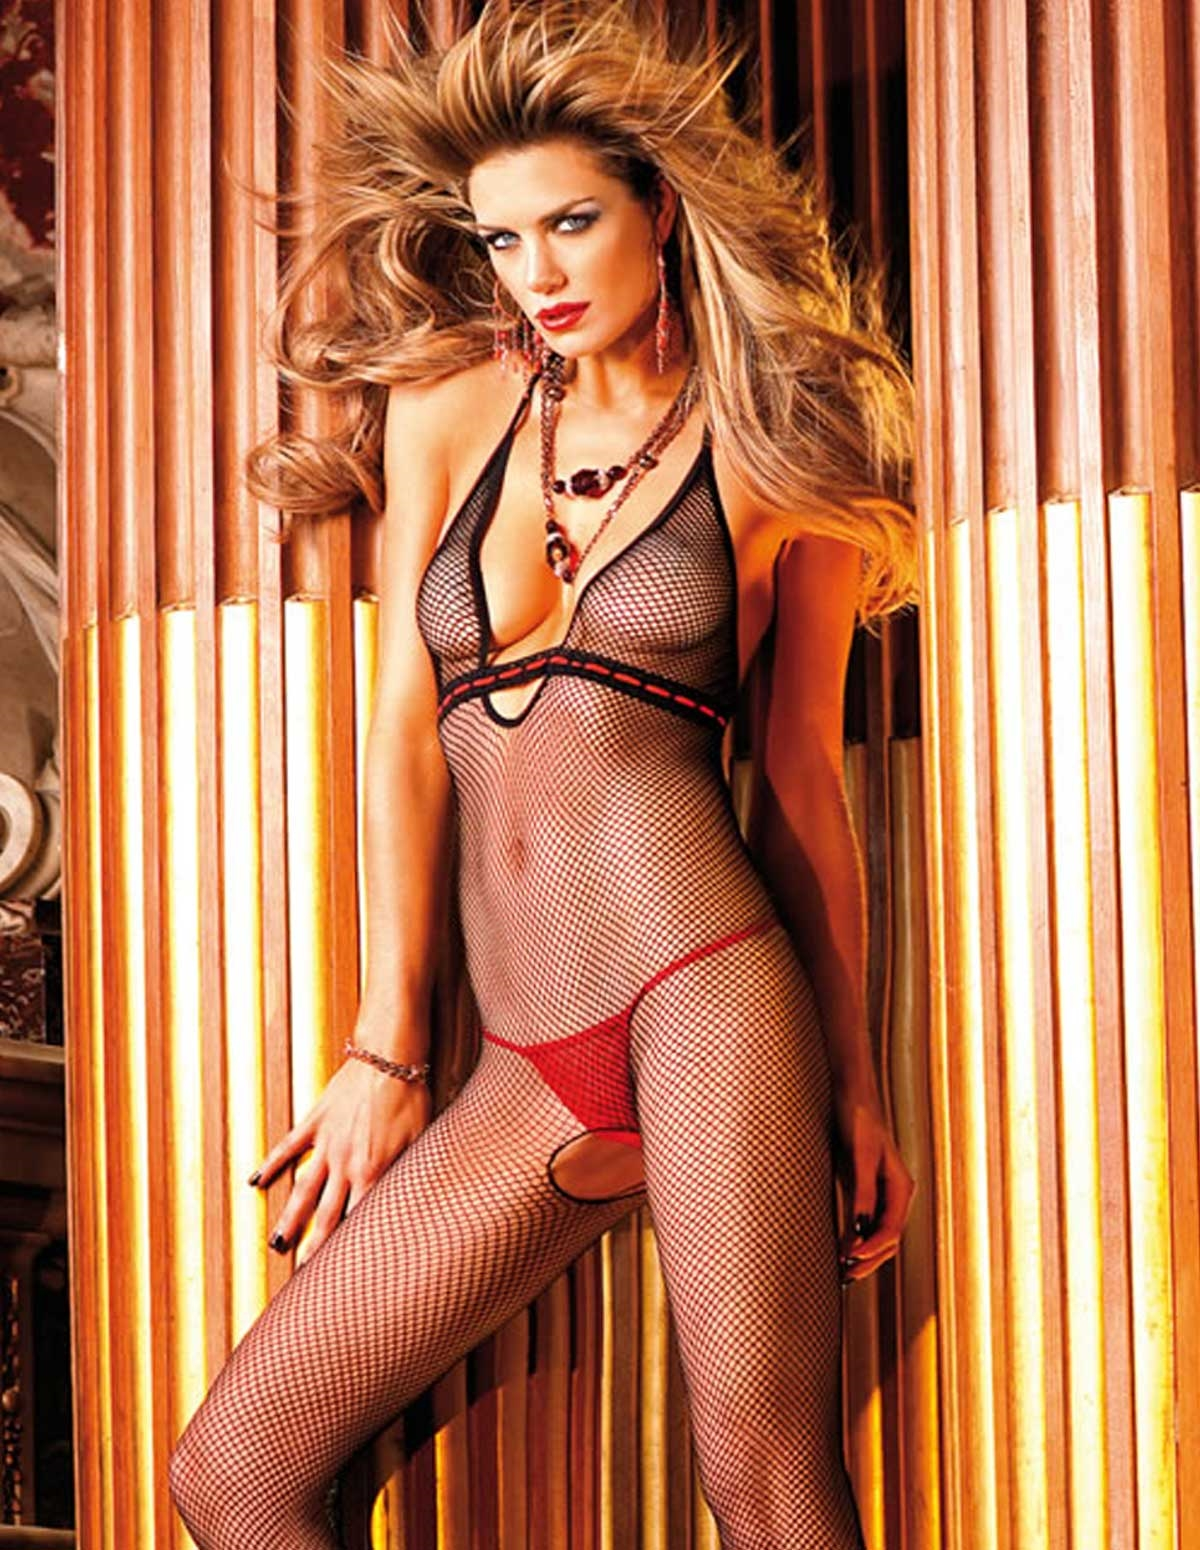 Halter Net Bodystocking